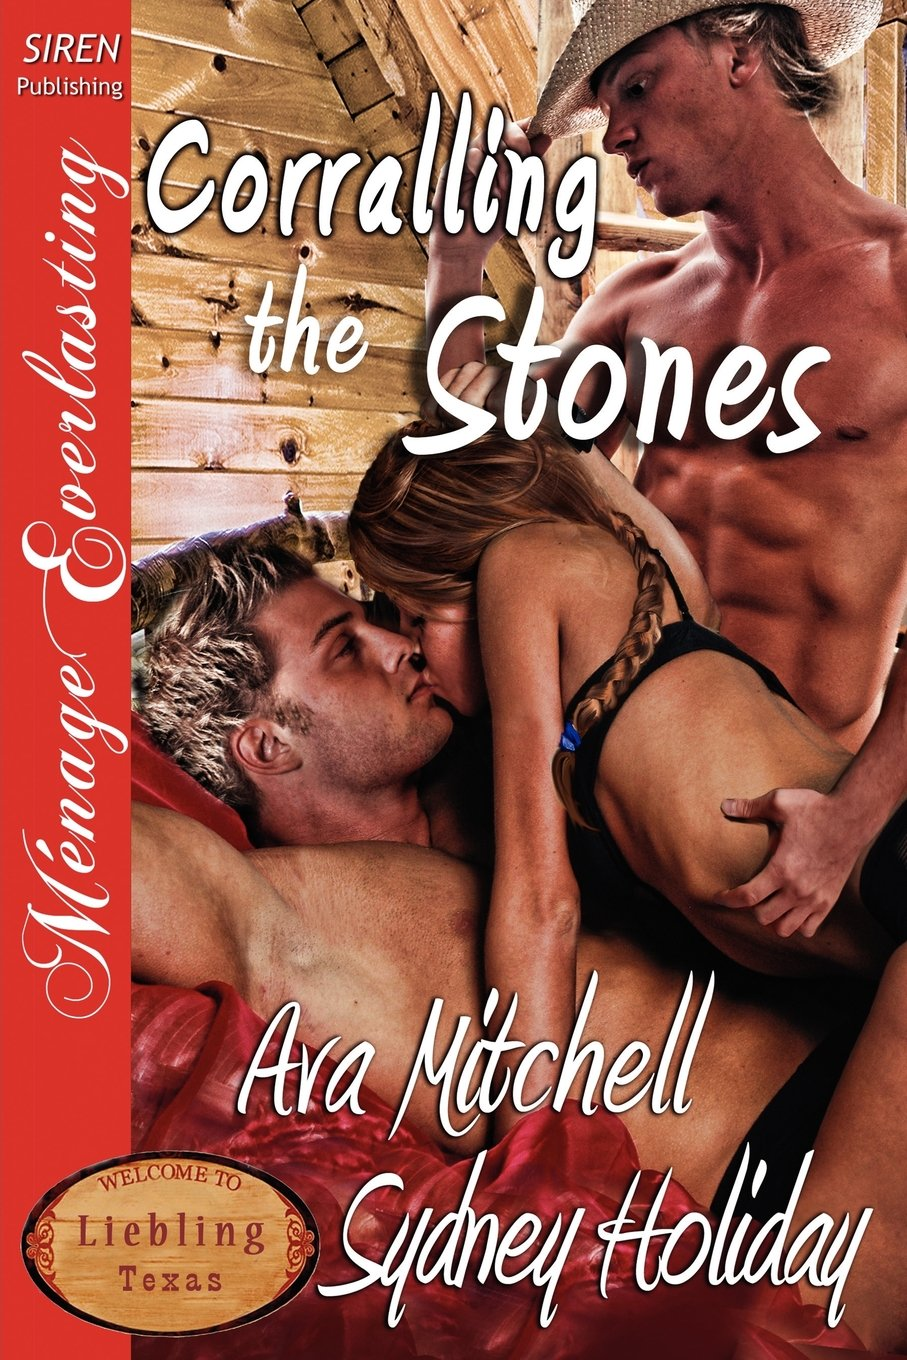 Corralling the Stones [Liebling, Texas 3] [The Ava Mitchell and Sydney Holiday Collection] (Siren Publishing Menage Everlasting) pdf